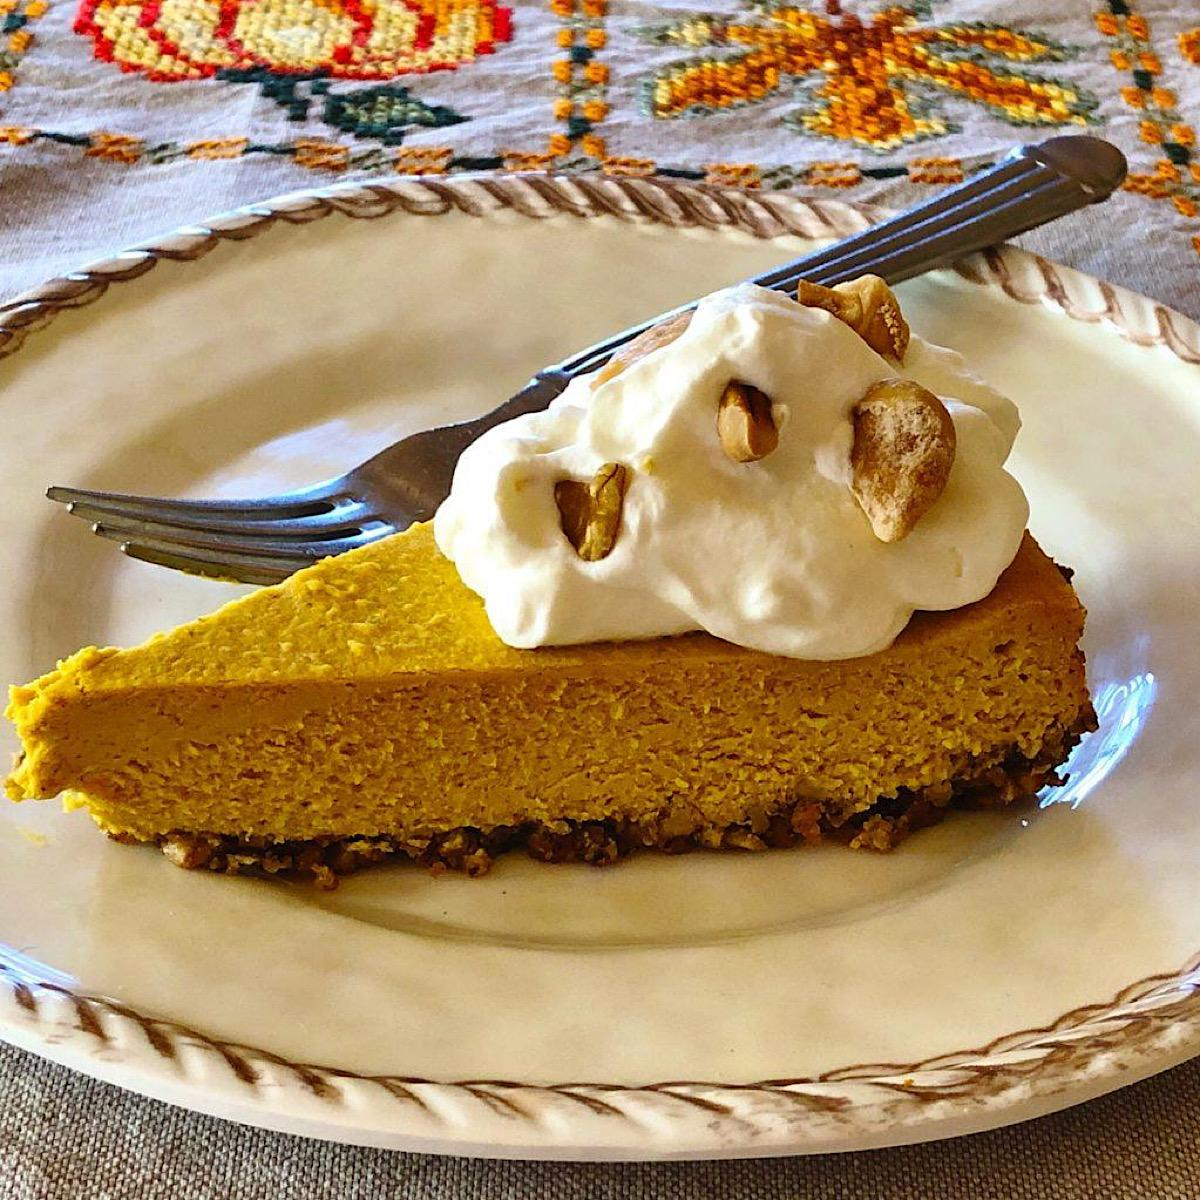 Low sugar, low carb slice of pumpkin cheesecake